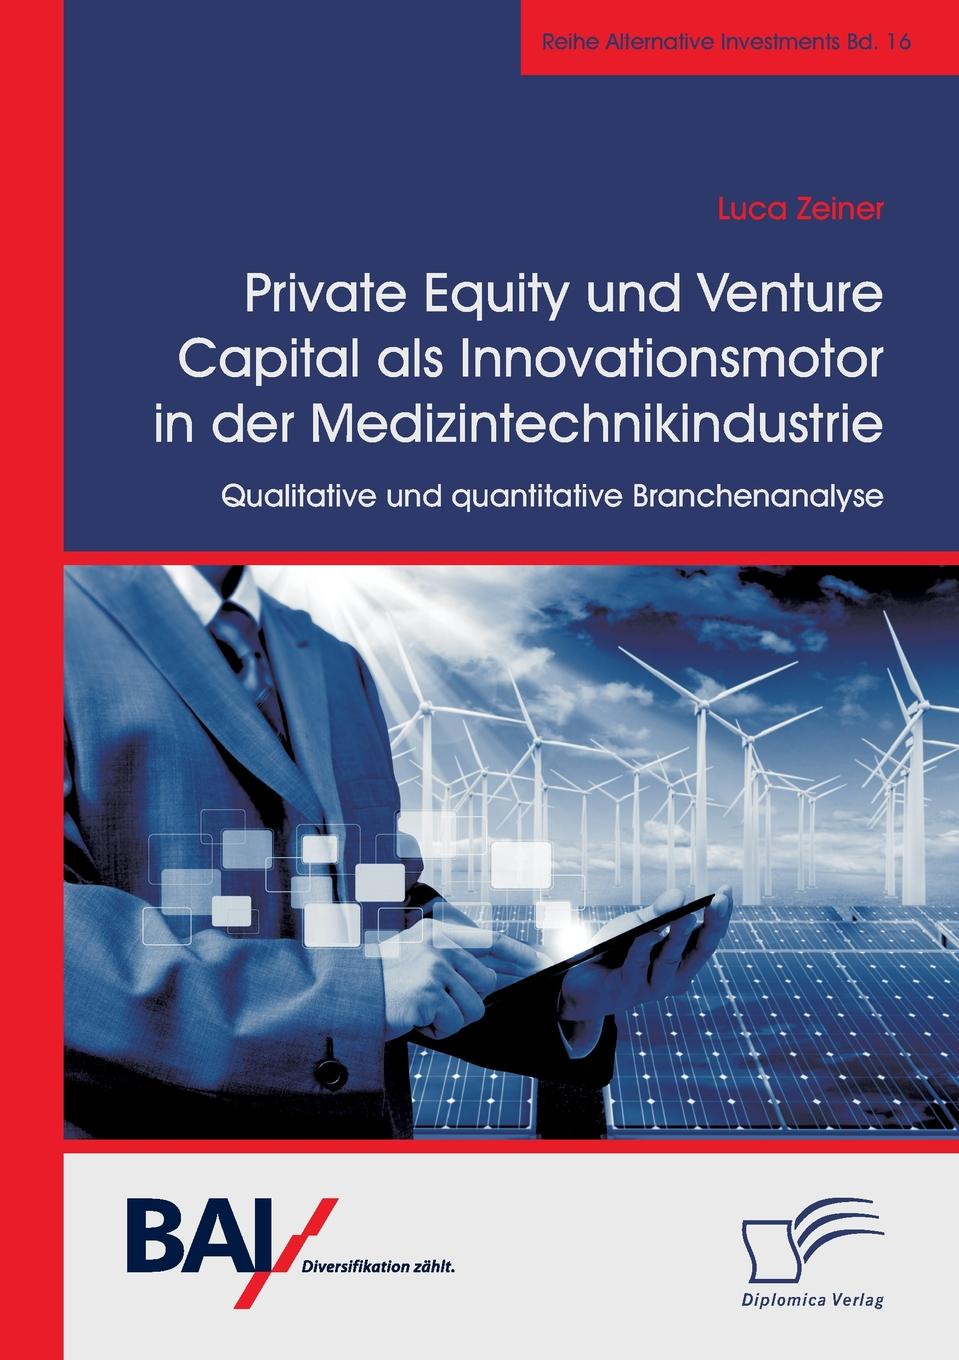 Luca Zeiner Private Equity und Venture Capital als Innovationsmotor in der Medizintechnikindustrie. Qualitative und quantitative Branchenanalyse hermine stäcker eine qualitative studie zur kongruenz von organisationskultur und leitbild als organisationaler identifikationsfaktor